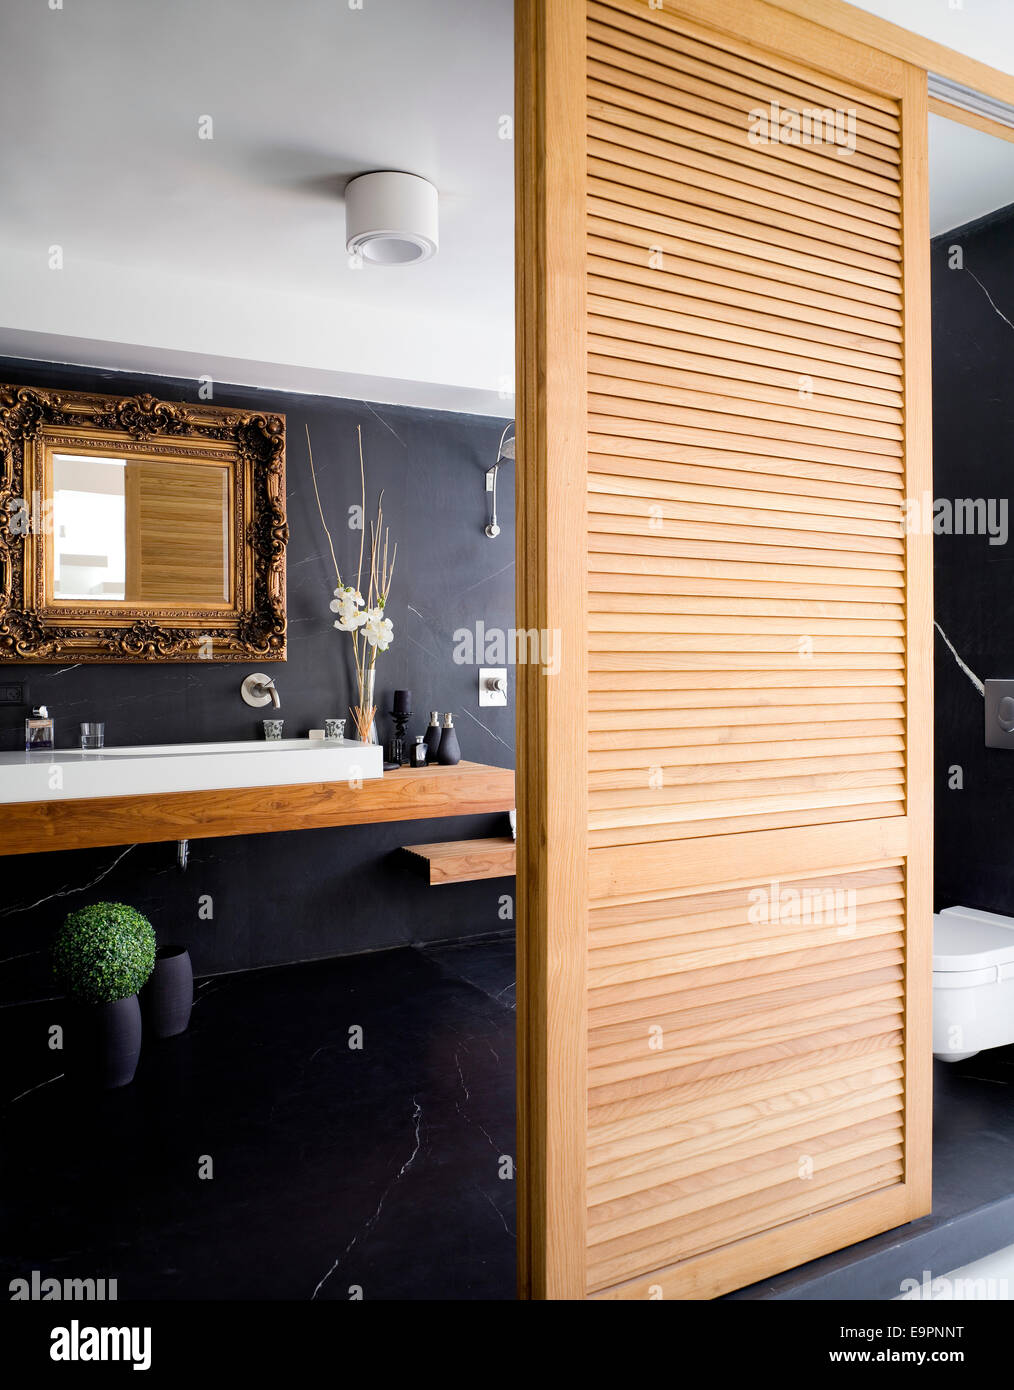 bathroom behind sliding wooden louvered doors in hilit home